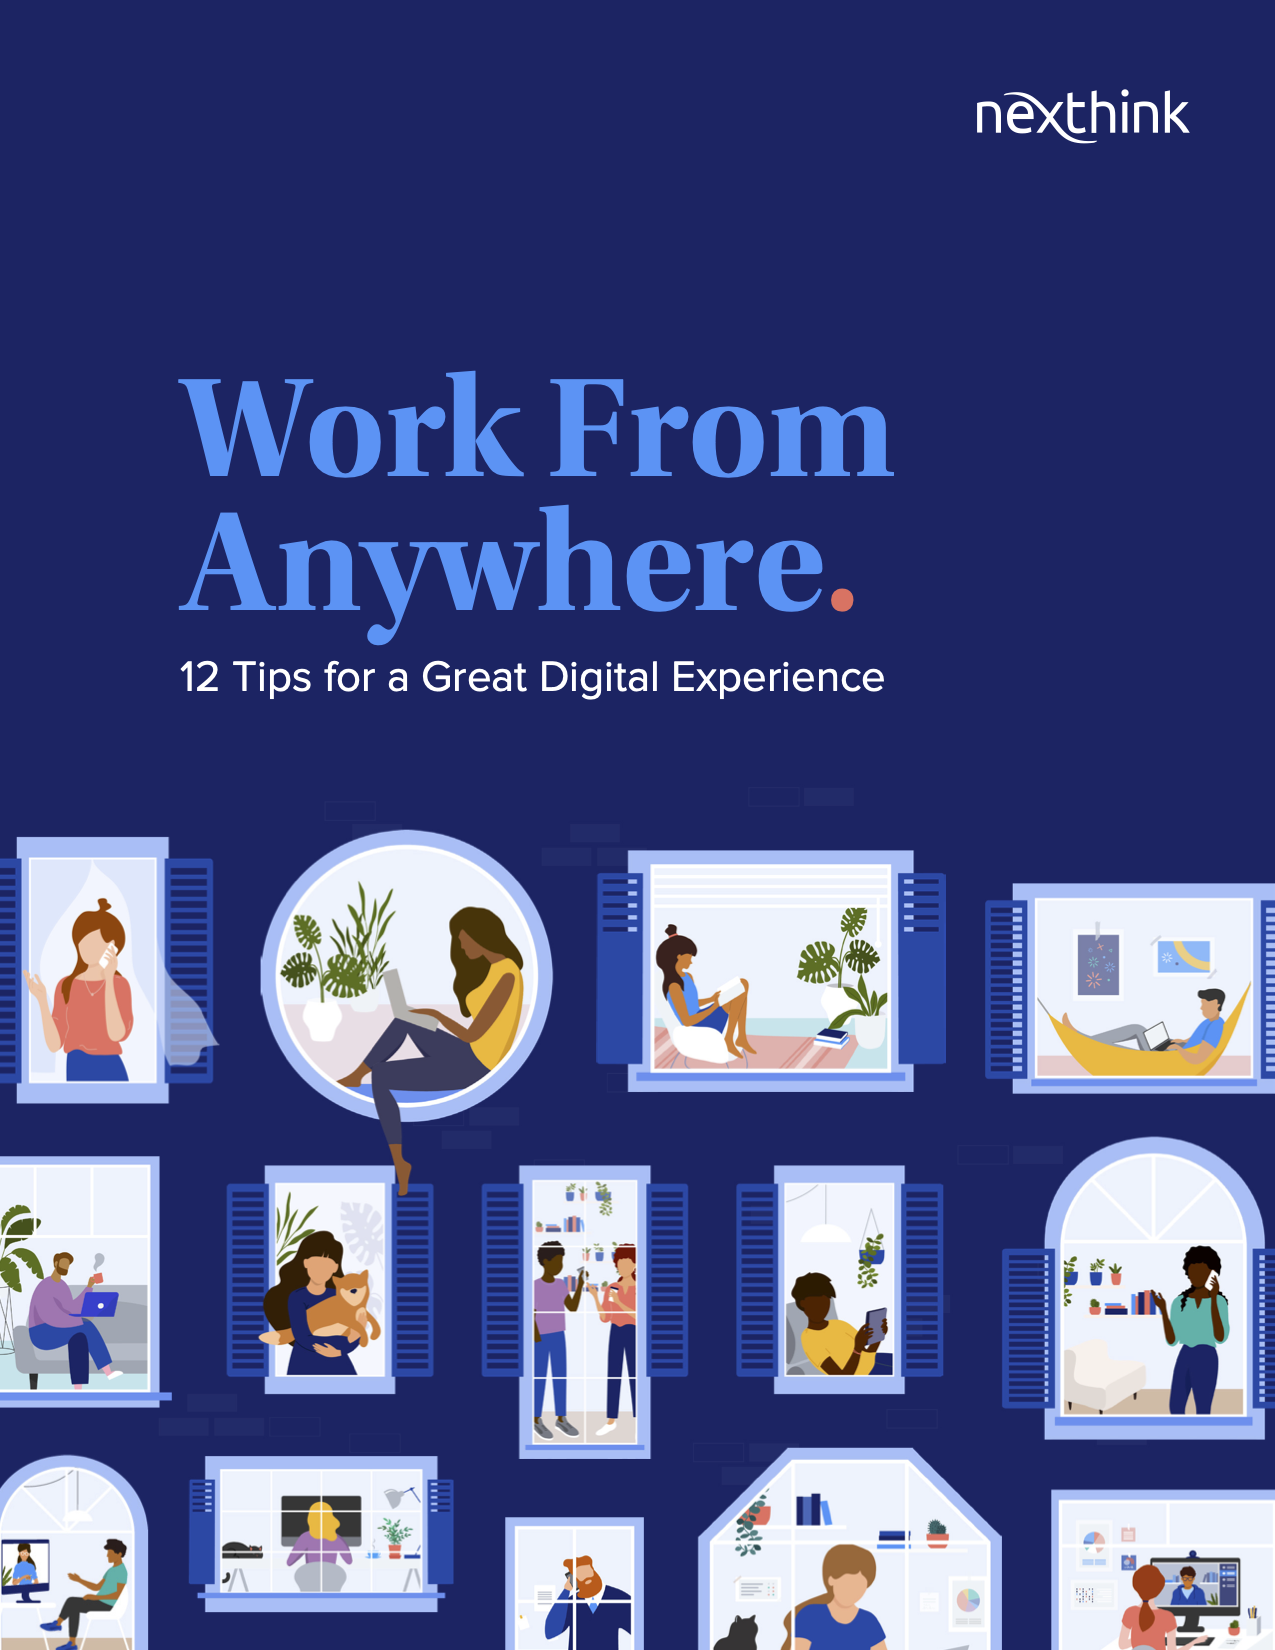 Work From Anywhere – 12 Tips to Help IT Support a Distributed Workforce